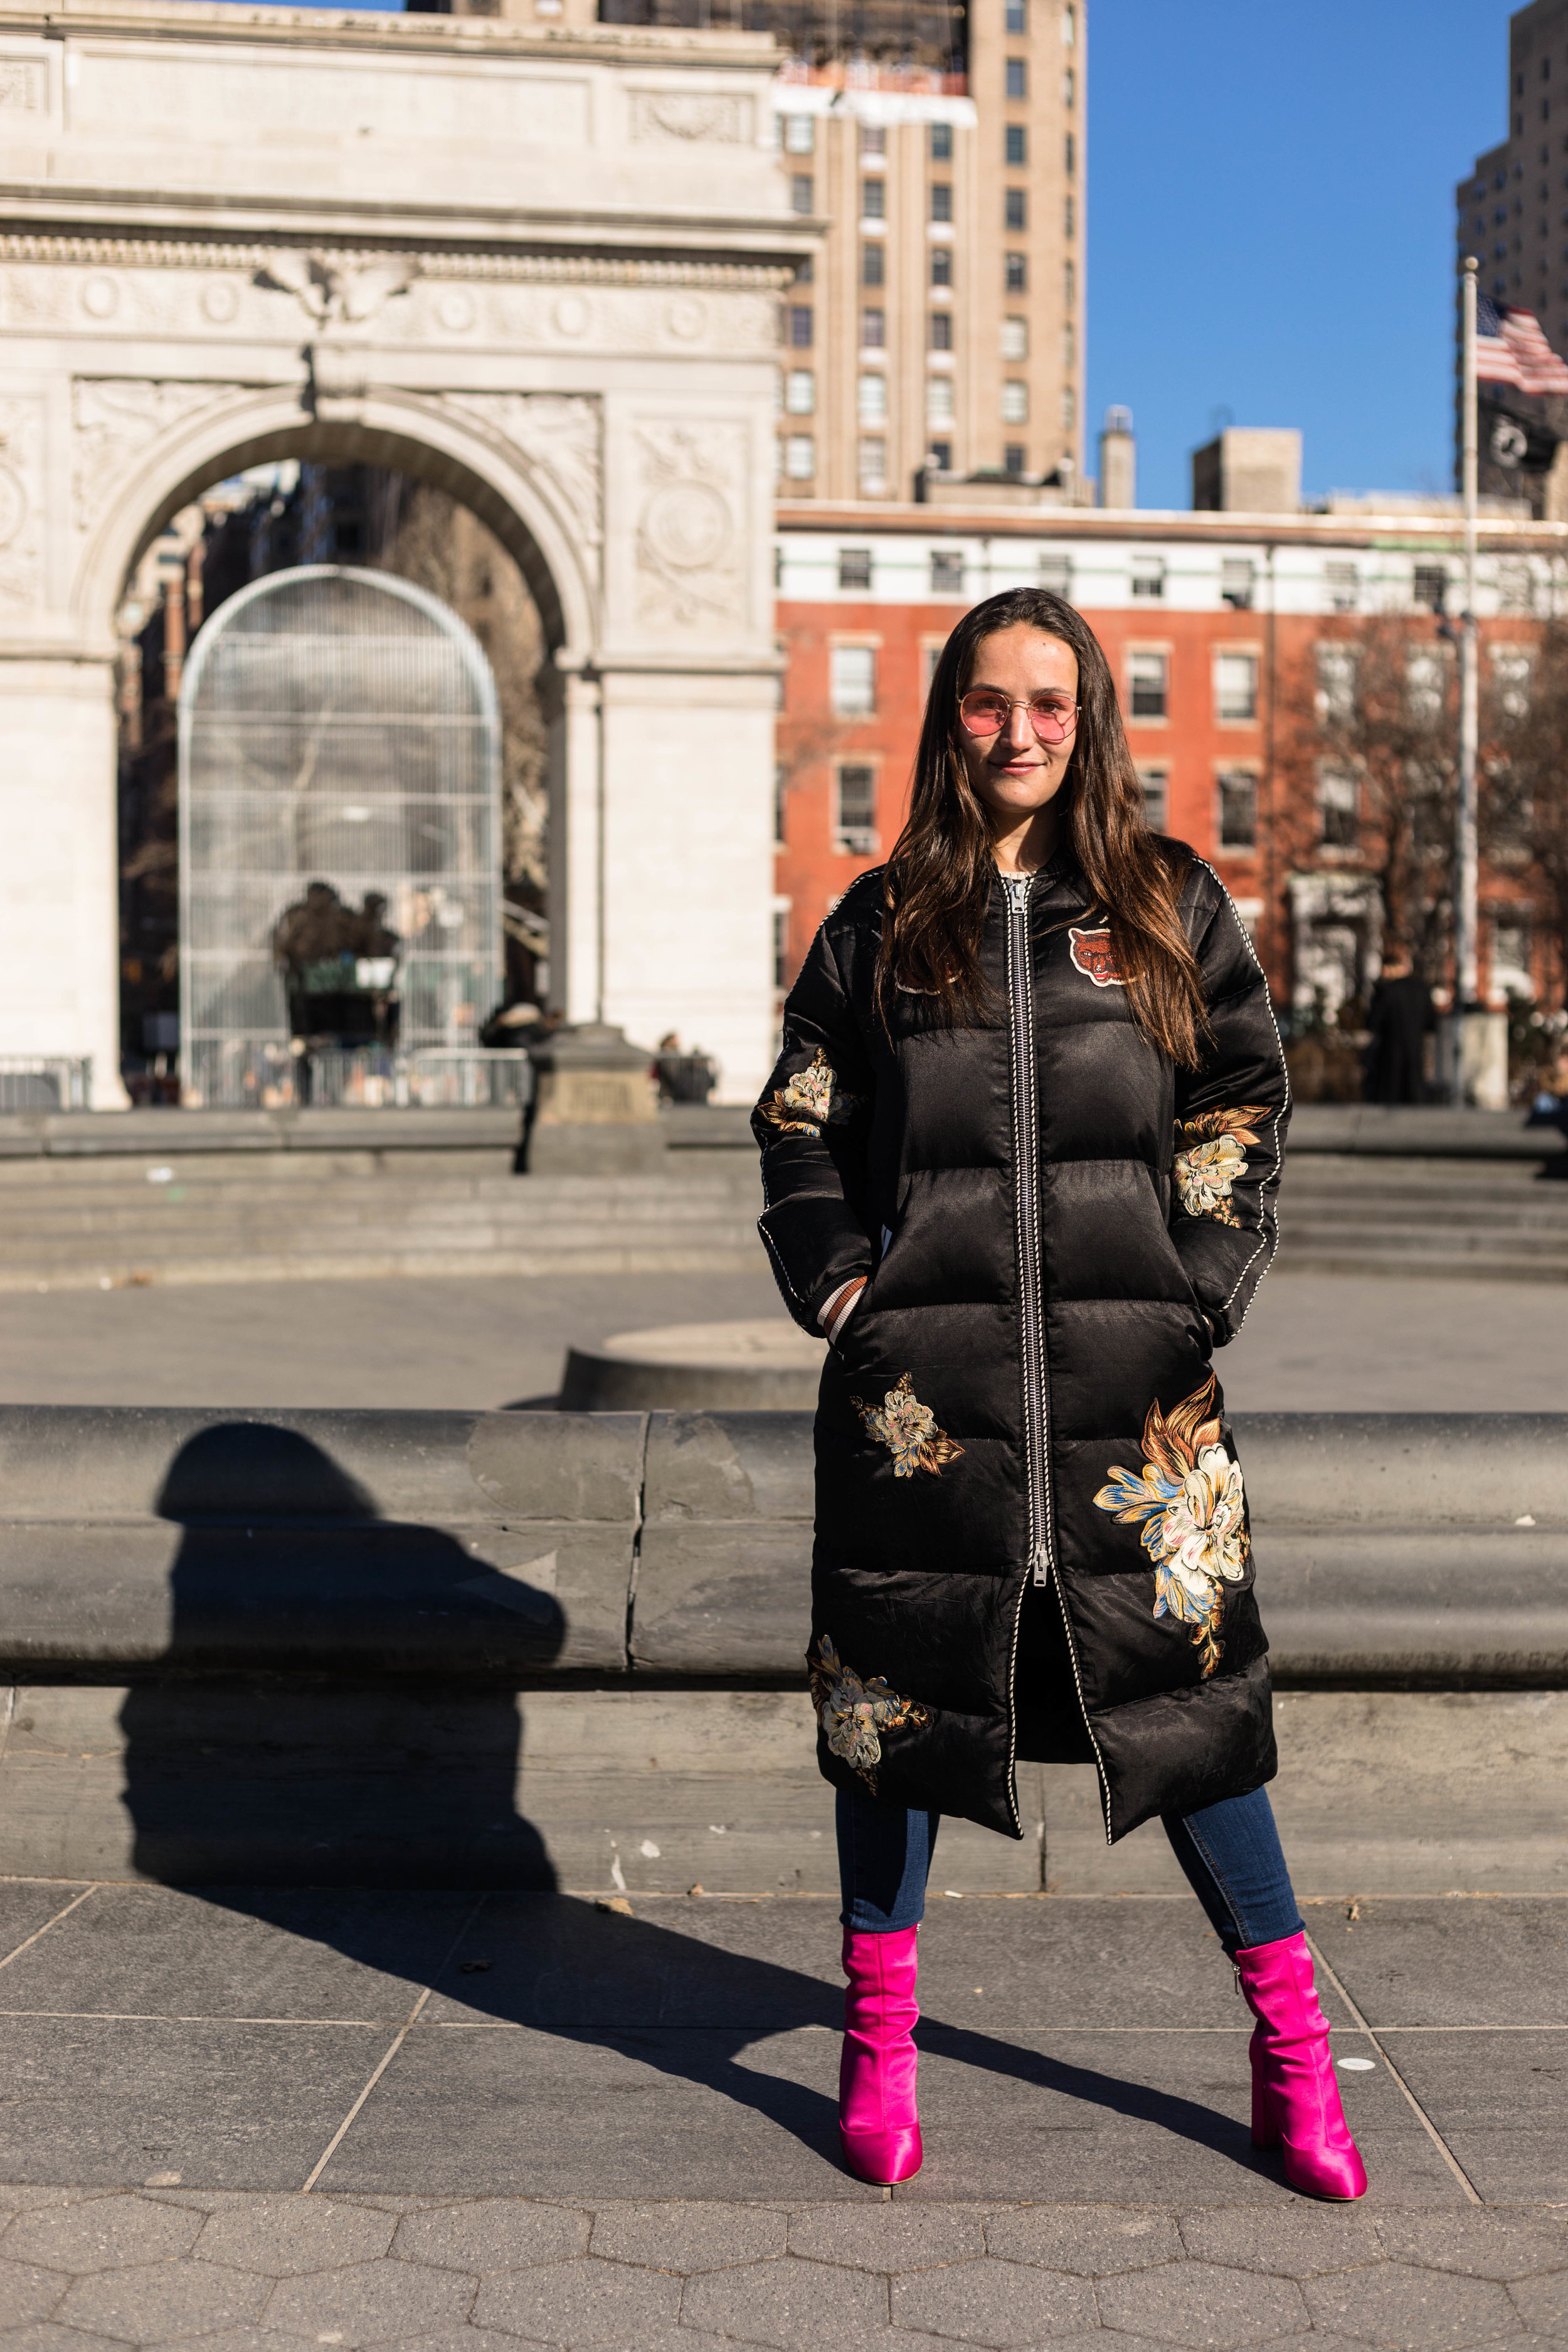 YIN 2MY YANG SOPHIE BICKLEY BLOGGER SISTERS NYC PUFFER JACKET POST JANUARY 2018 2.jpg